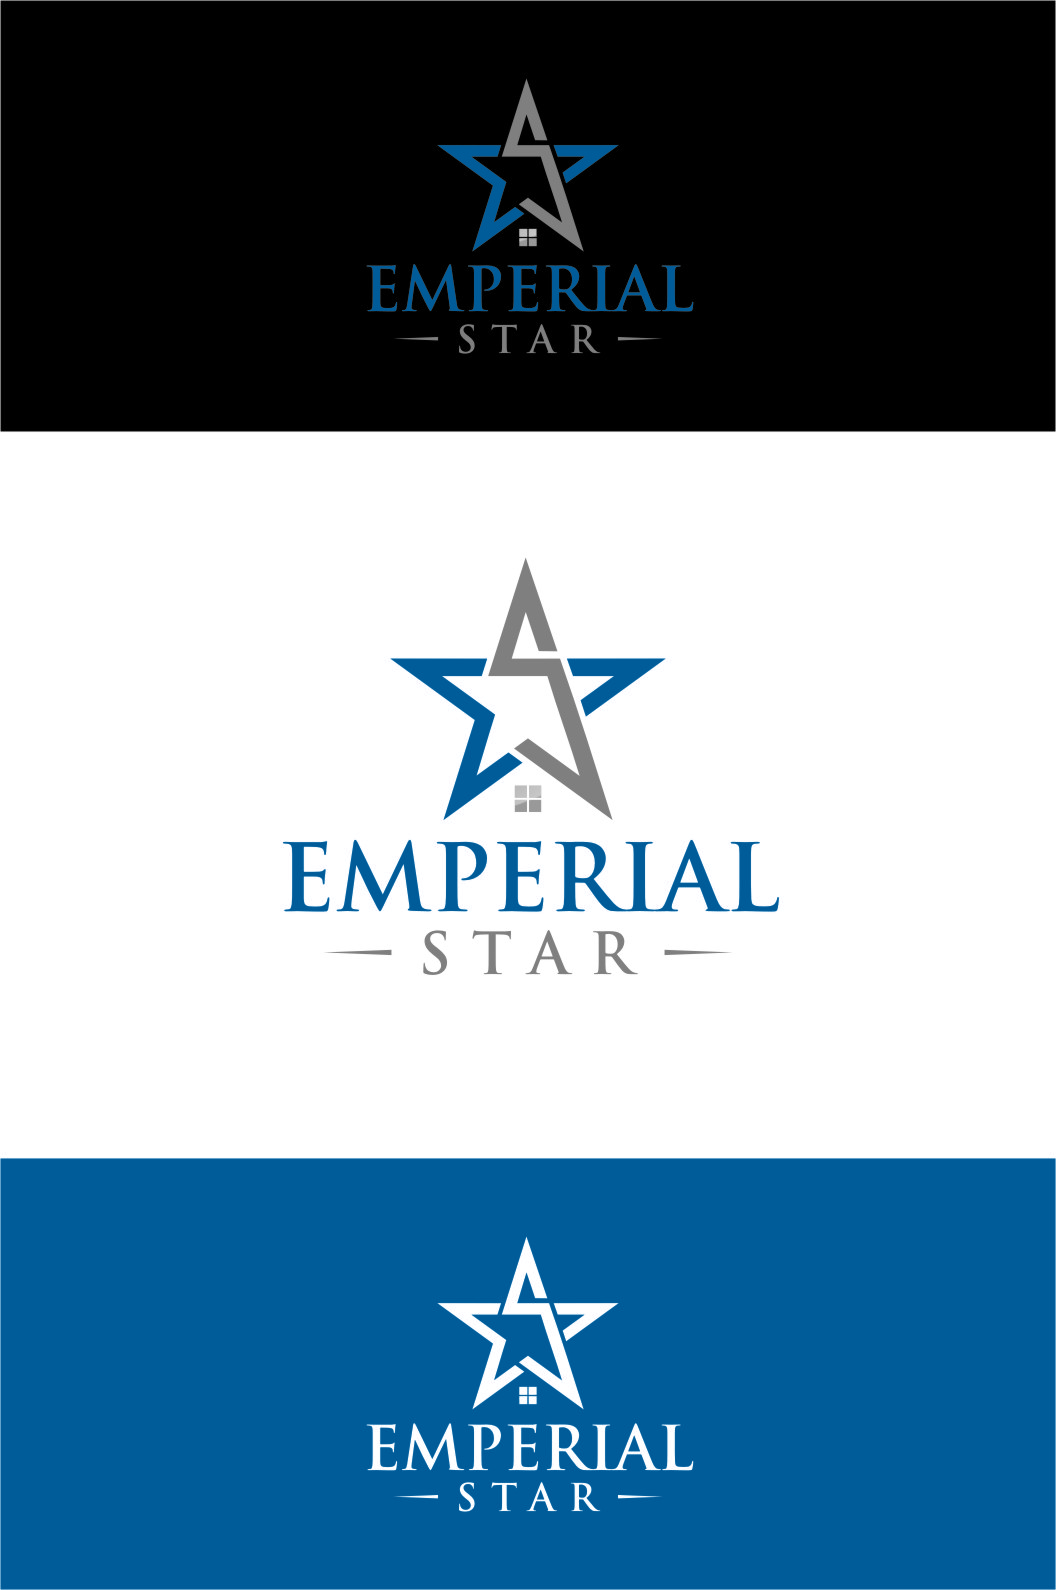 Logo Design by Ngepet_art - Entry No. 88 in the Logo Design Contest Emperial Star Logo Design.